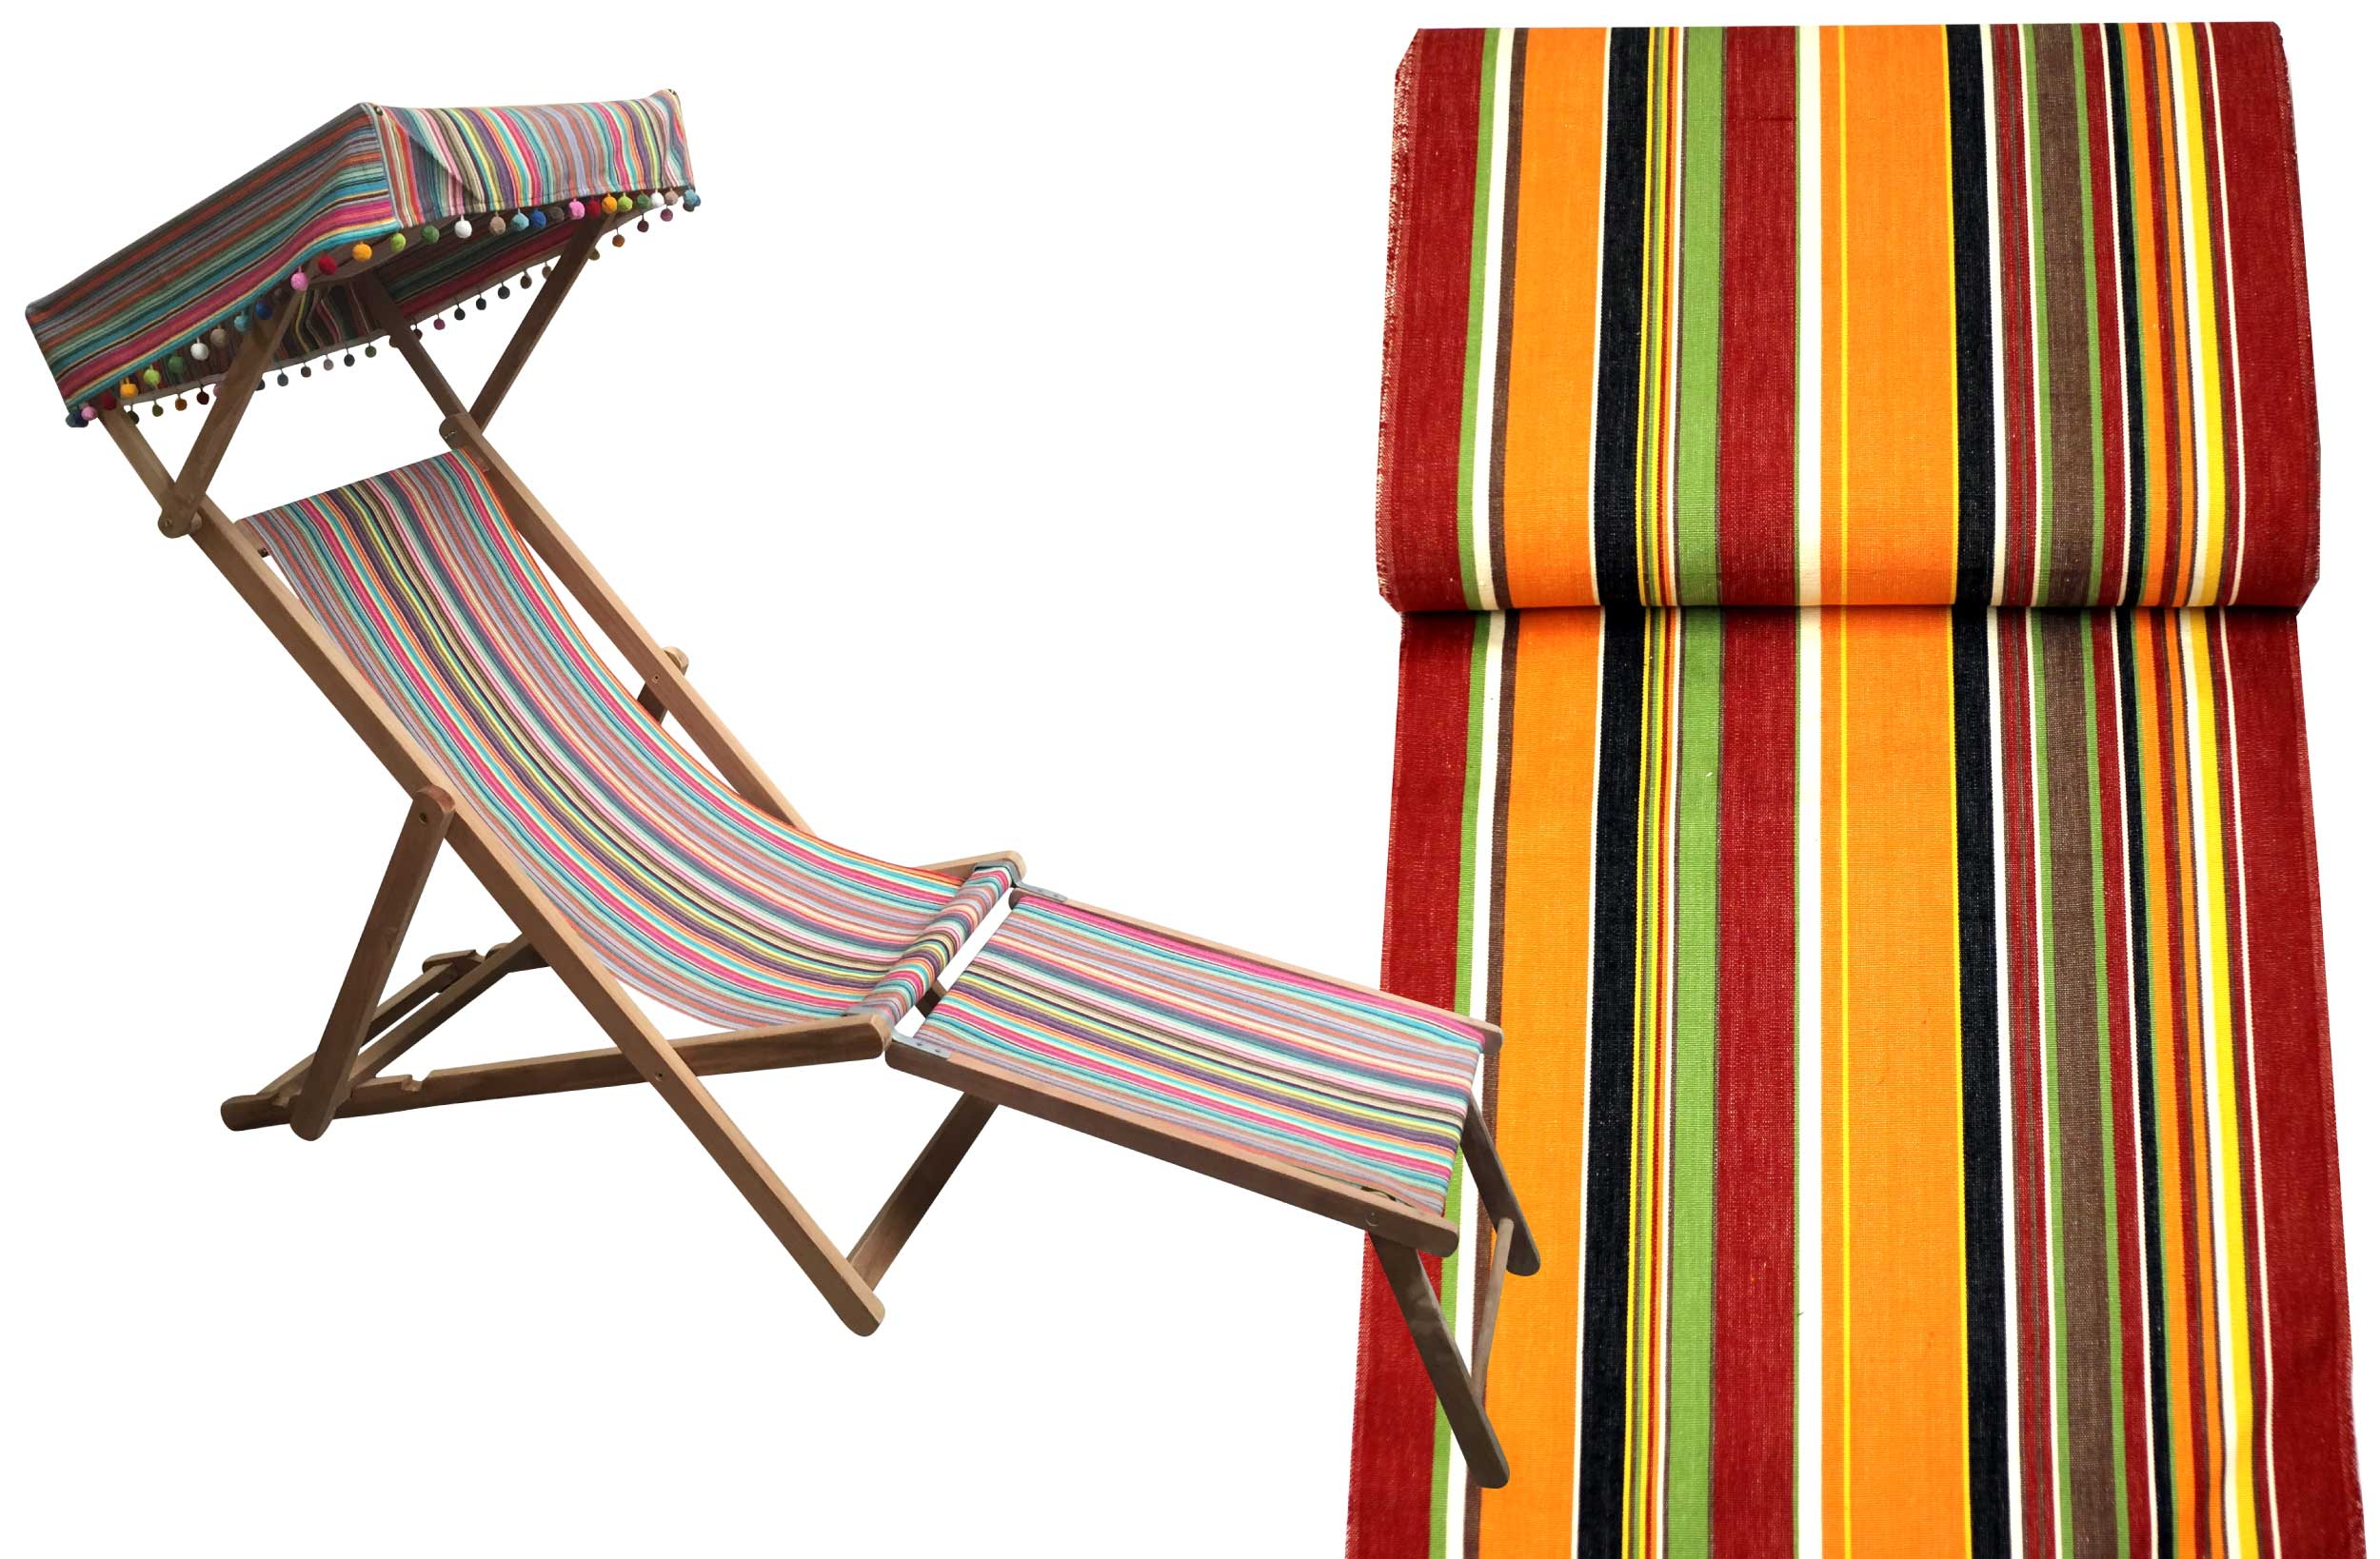 Retro Orange Vintage Style Wooden Deckchair with Canopy and Footstool